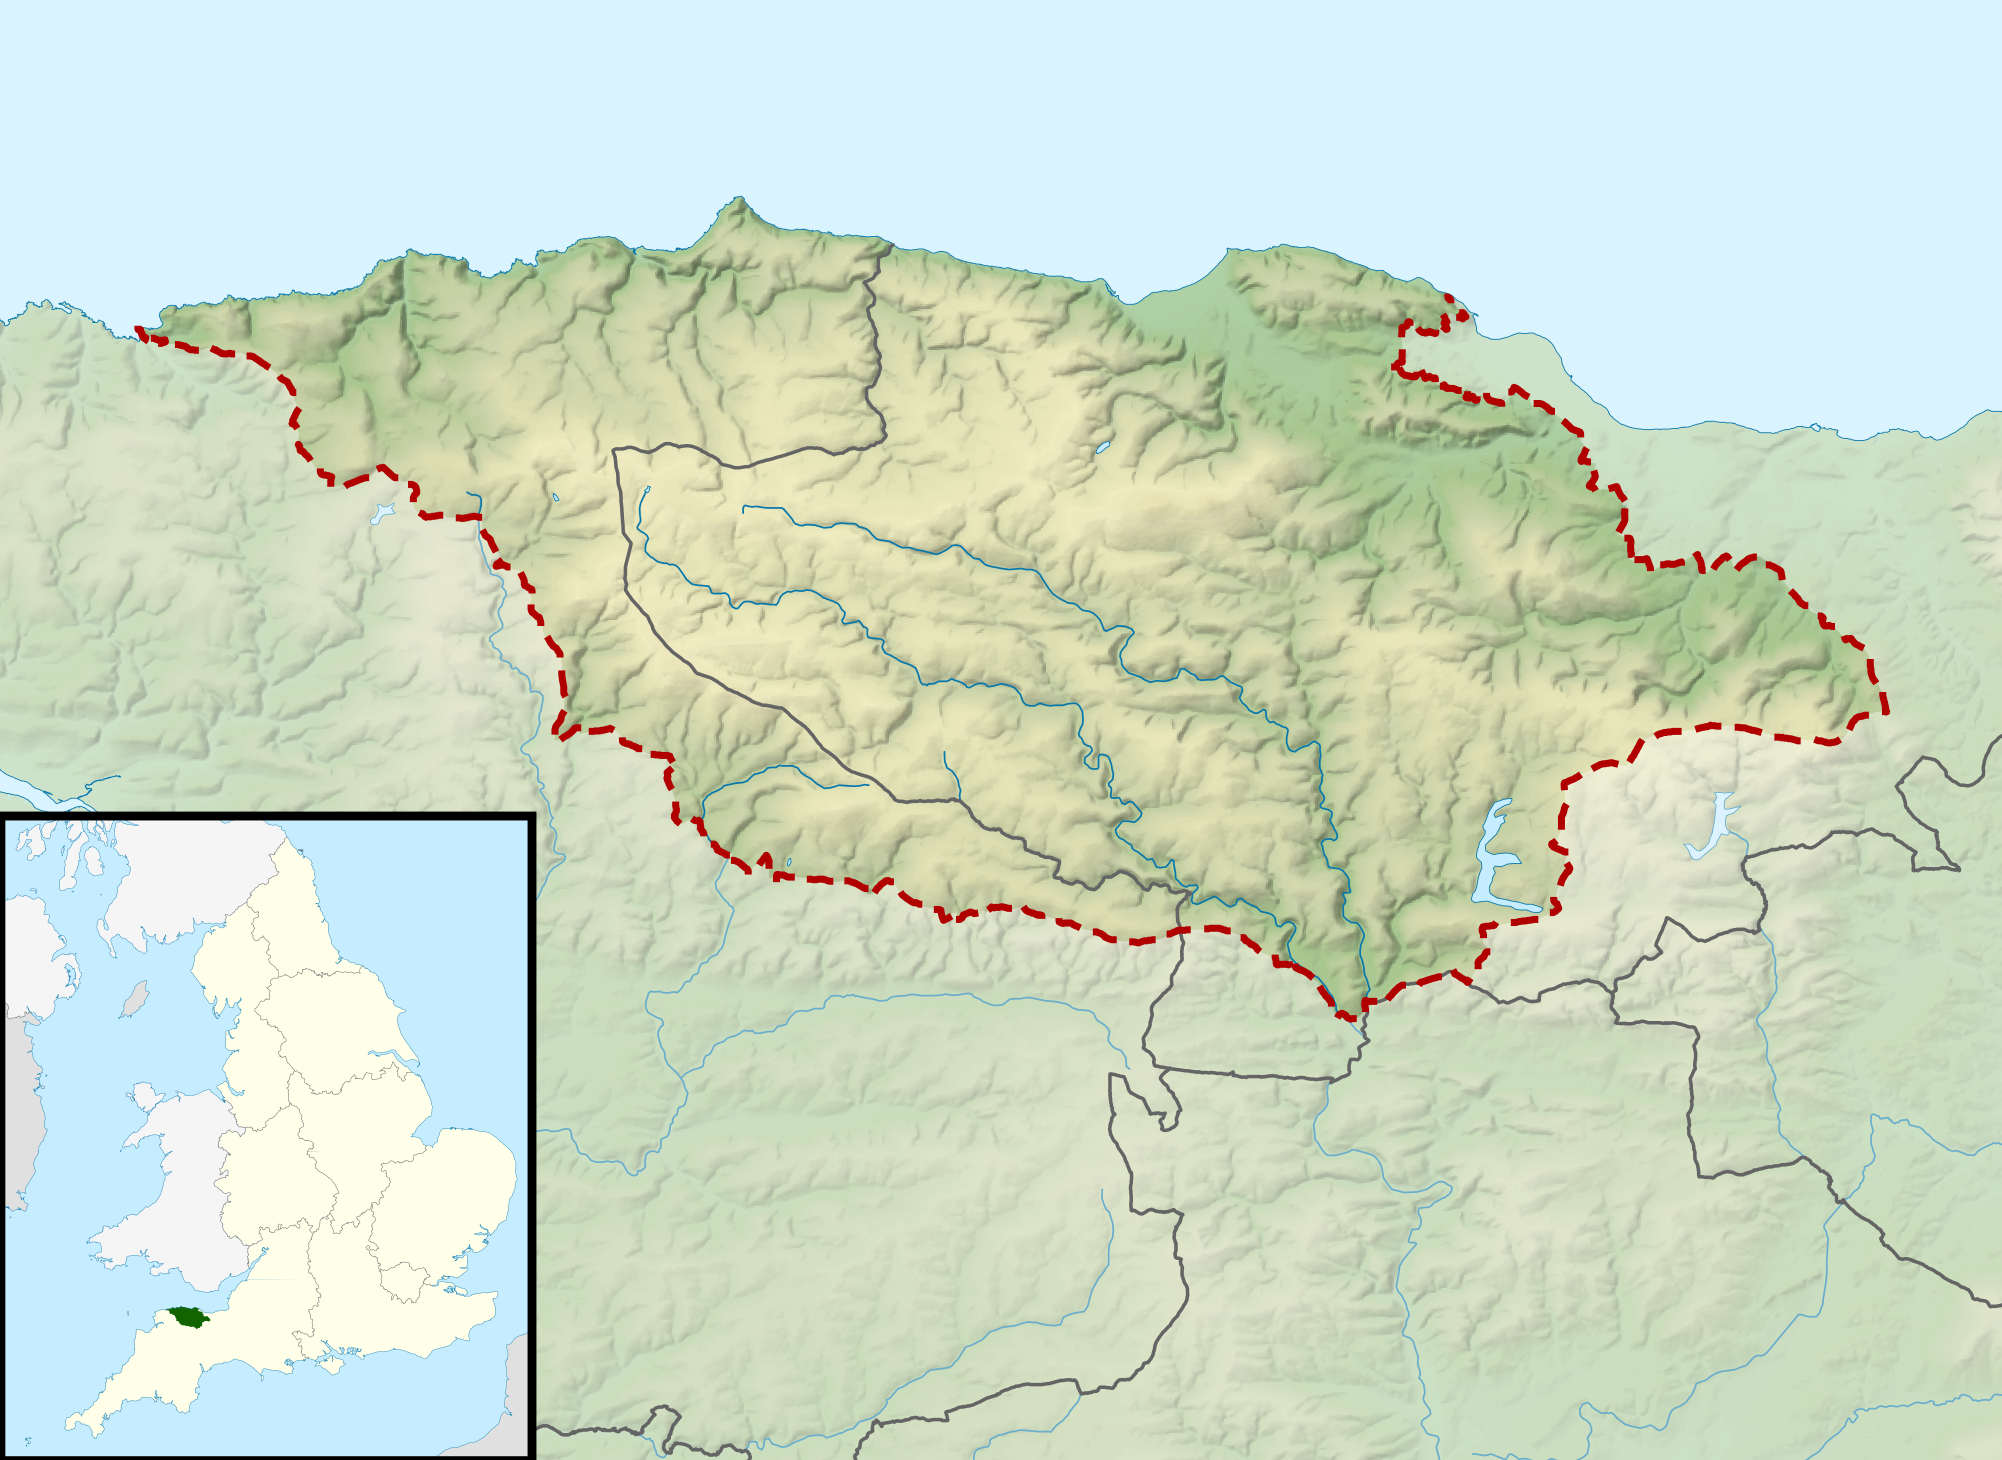 FileExmoor National Park UK Relief Location Mappng Wikimedia - National parks locations map